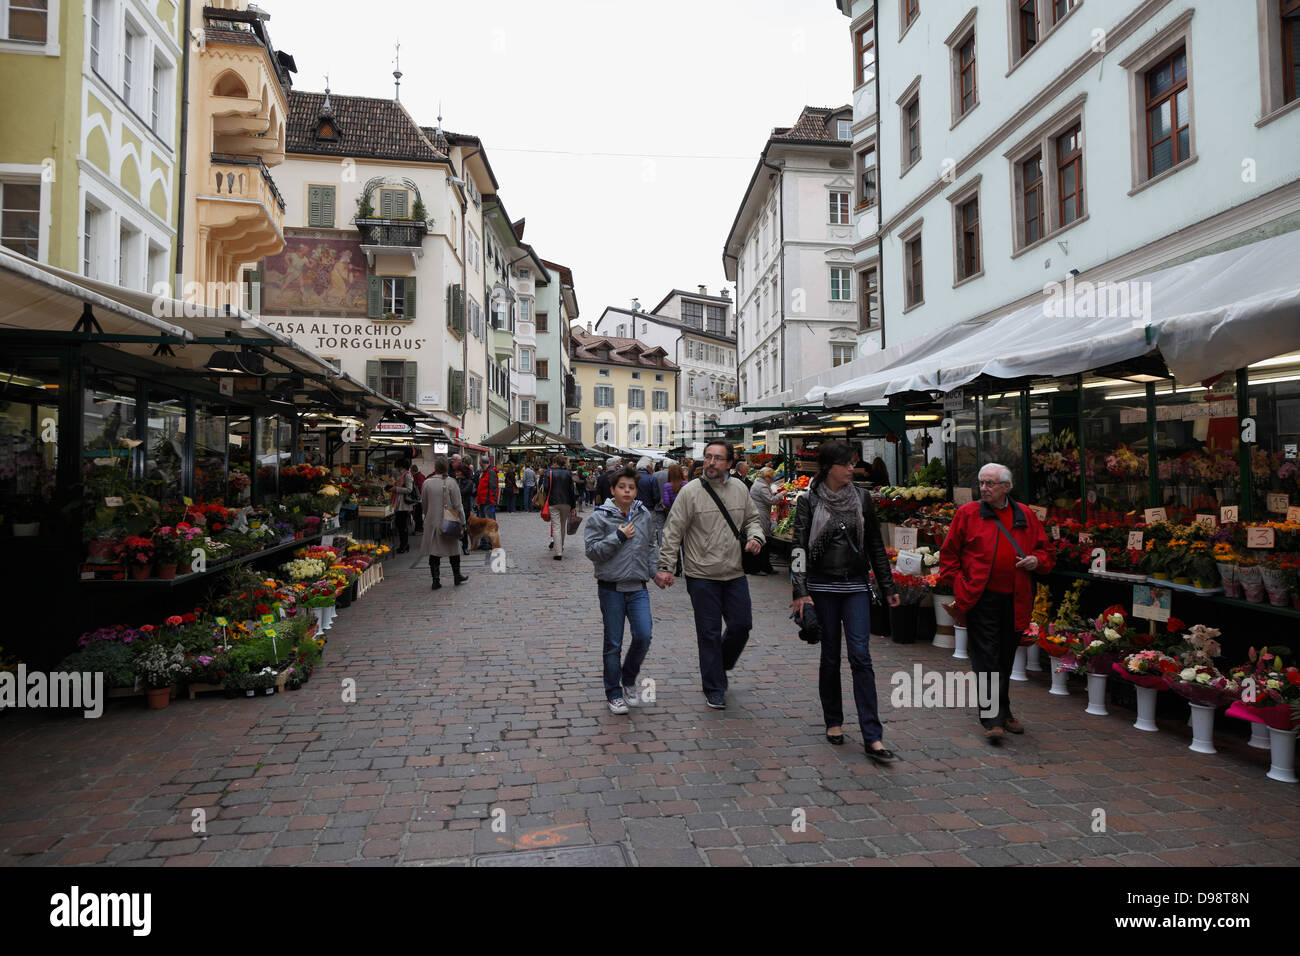 The street market in Bolzano,Italy Stock Photo